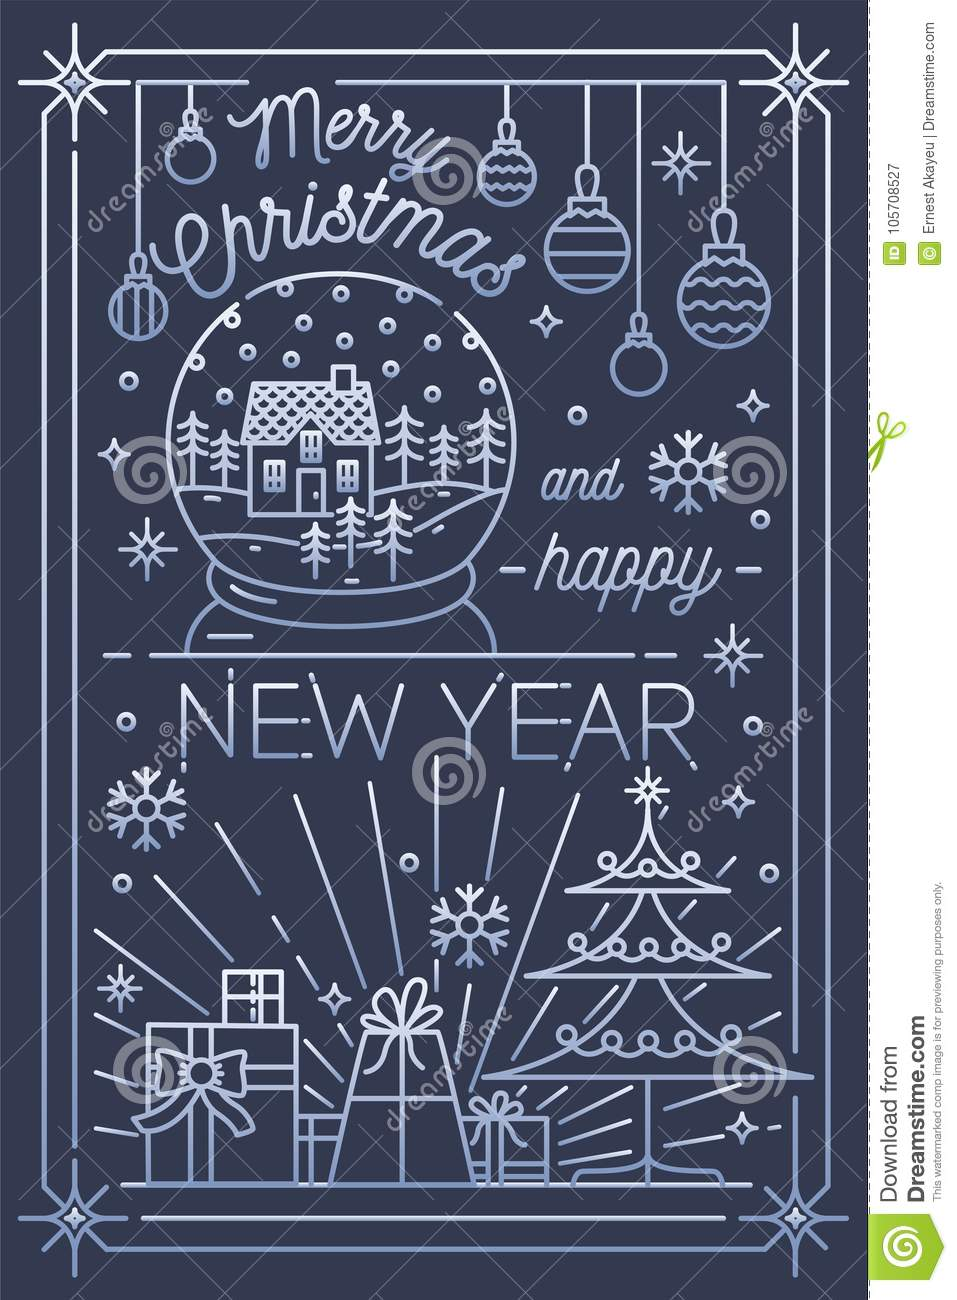 merry christmas and happy new year greeting card template snow